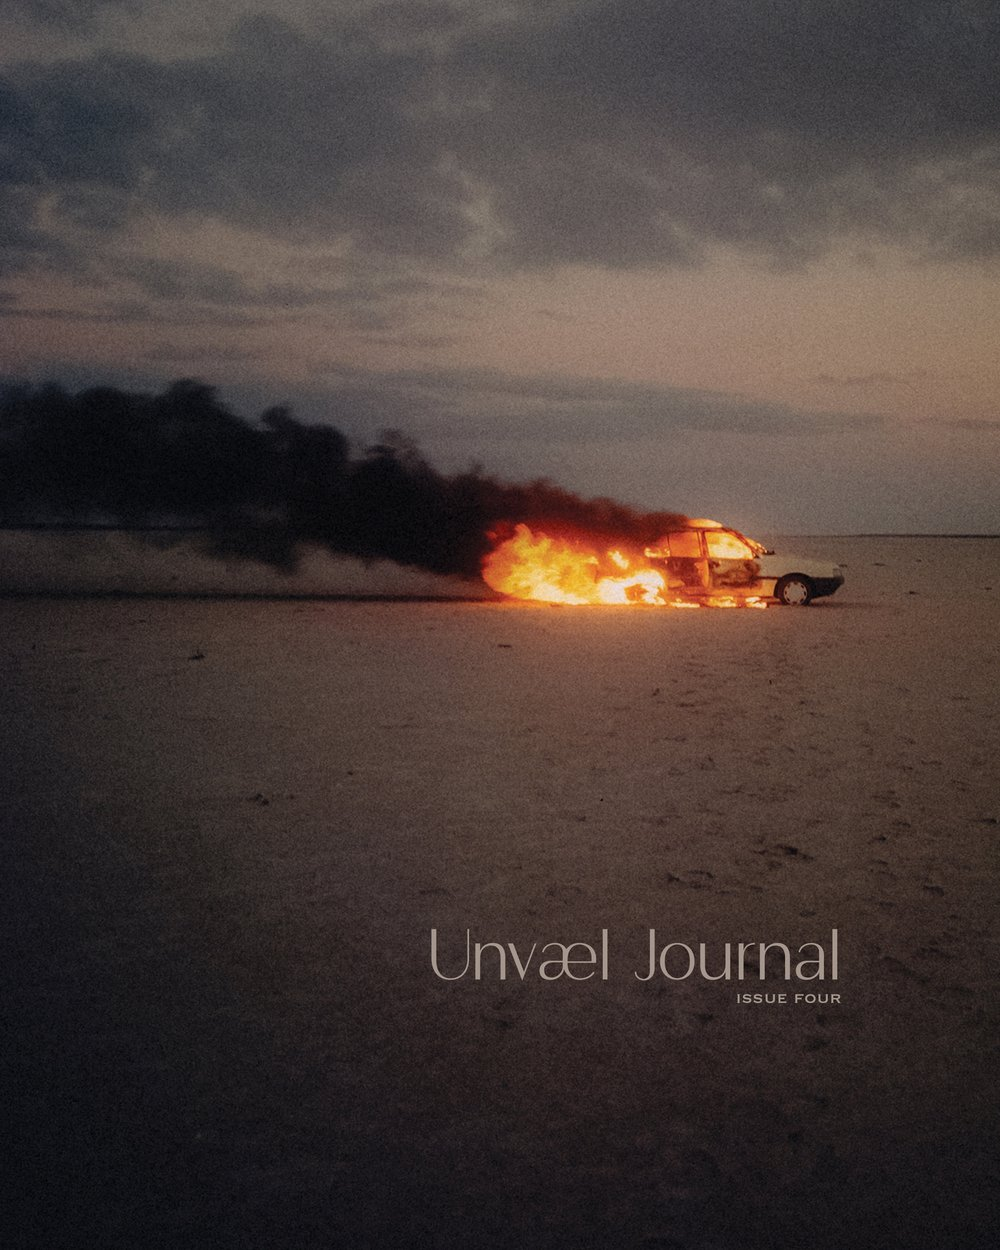 Journal Issue Four / Less than 5 copies remain so get yours today at the discounted price!